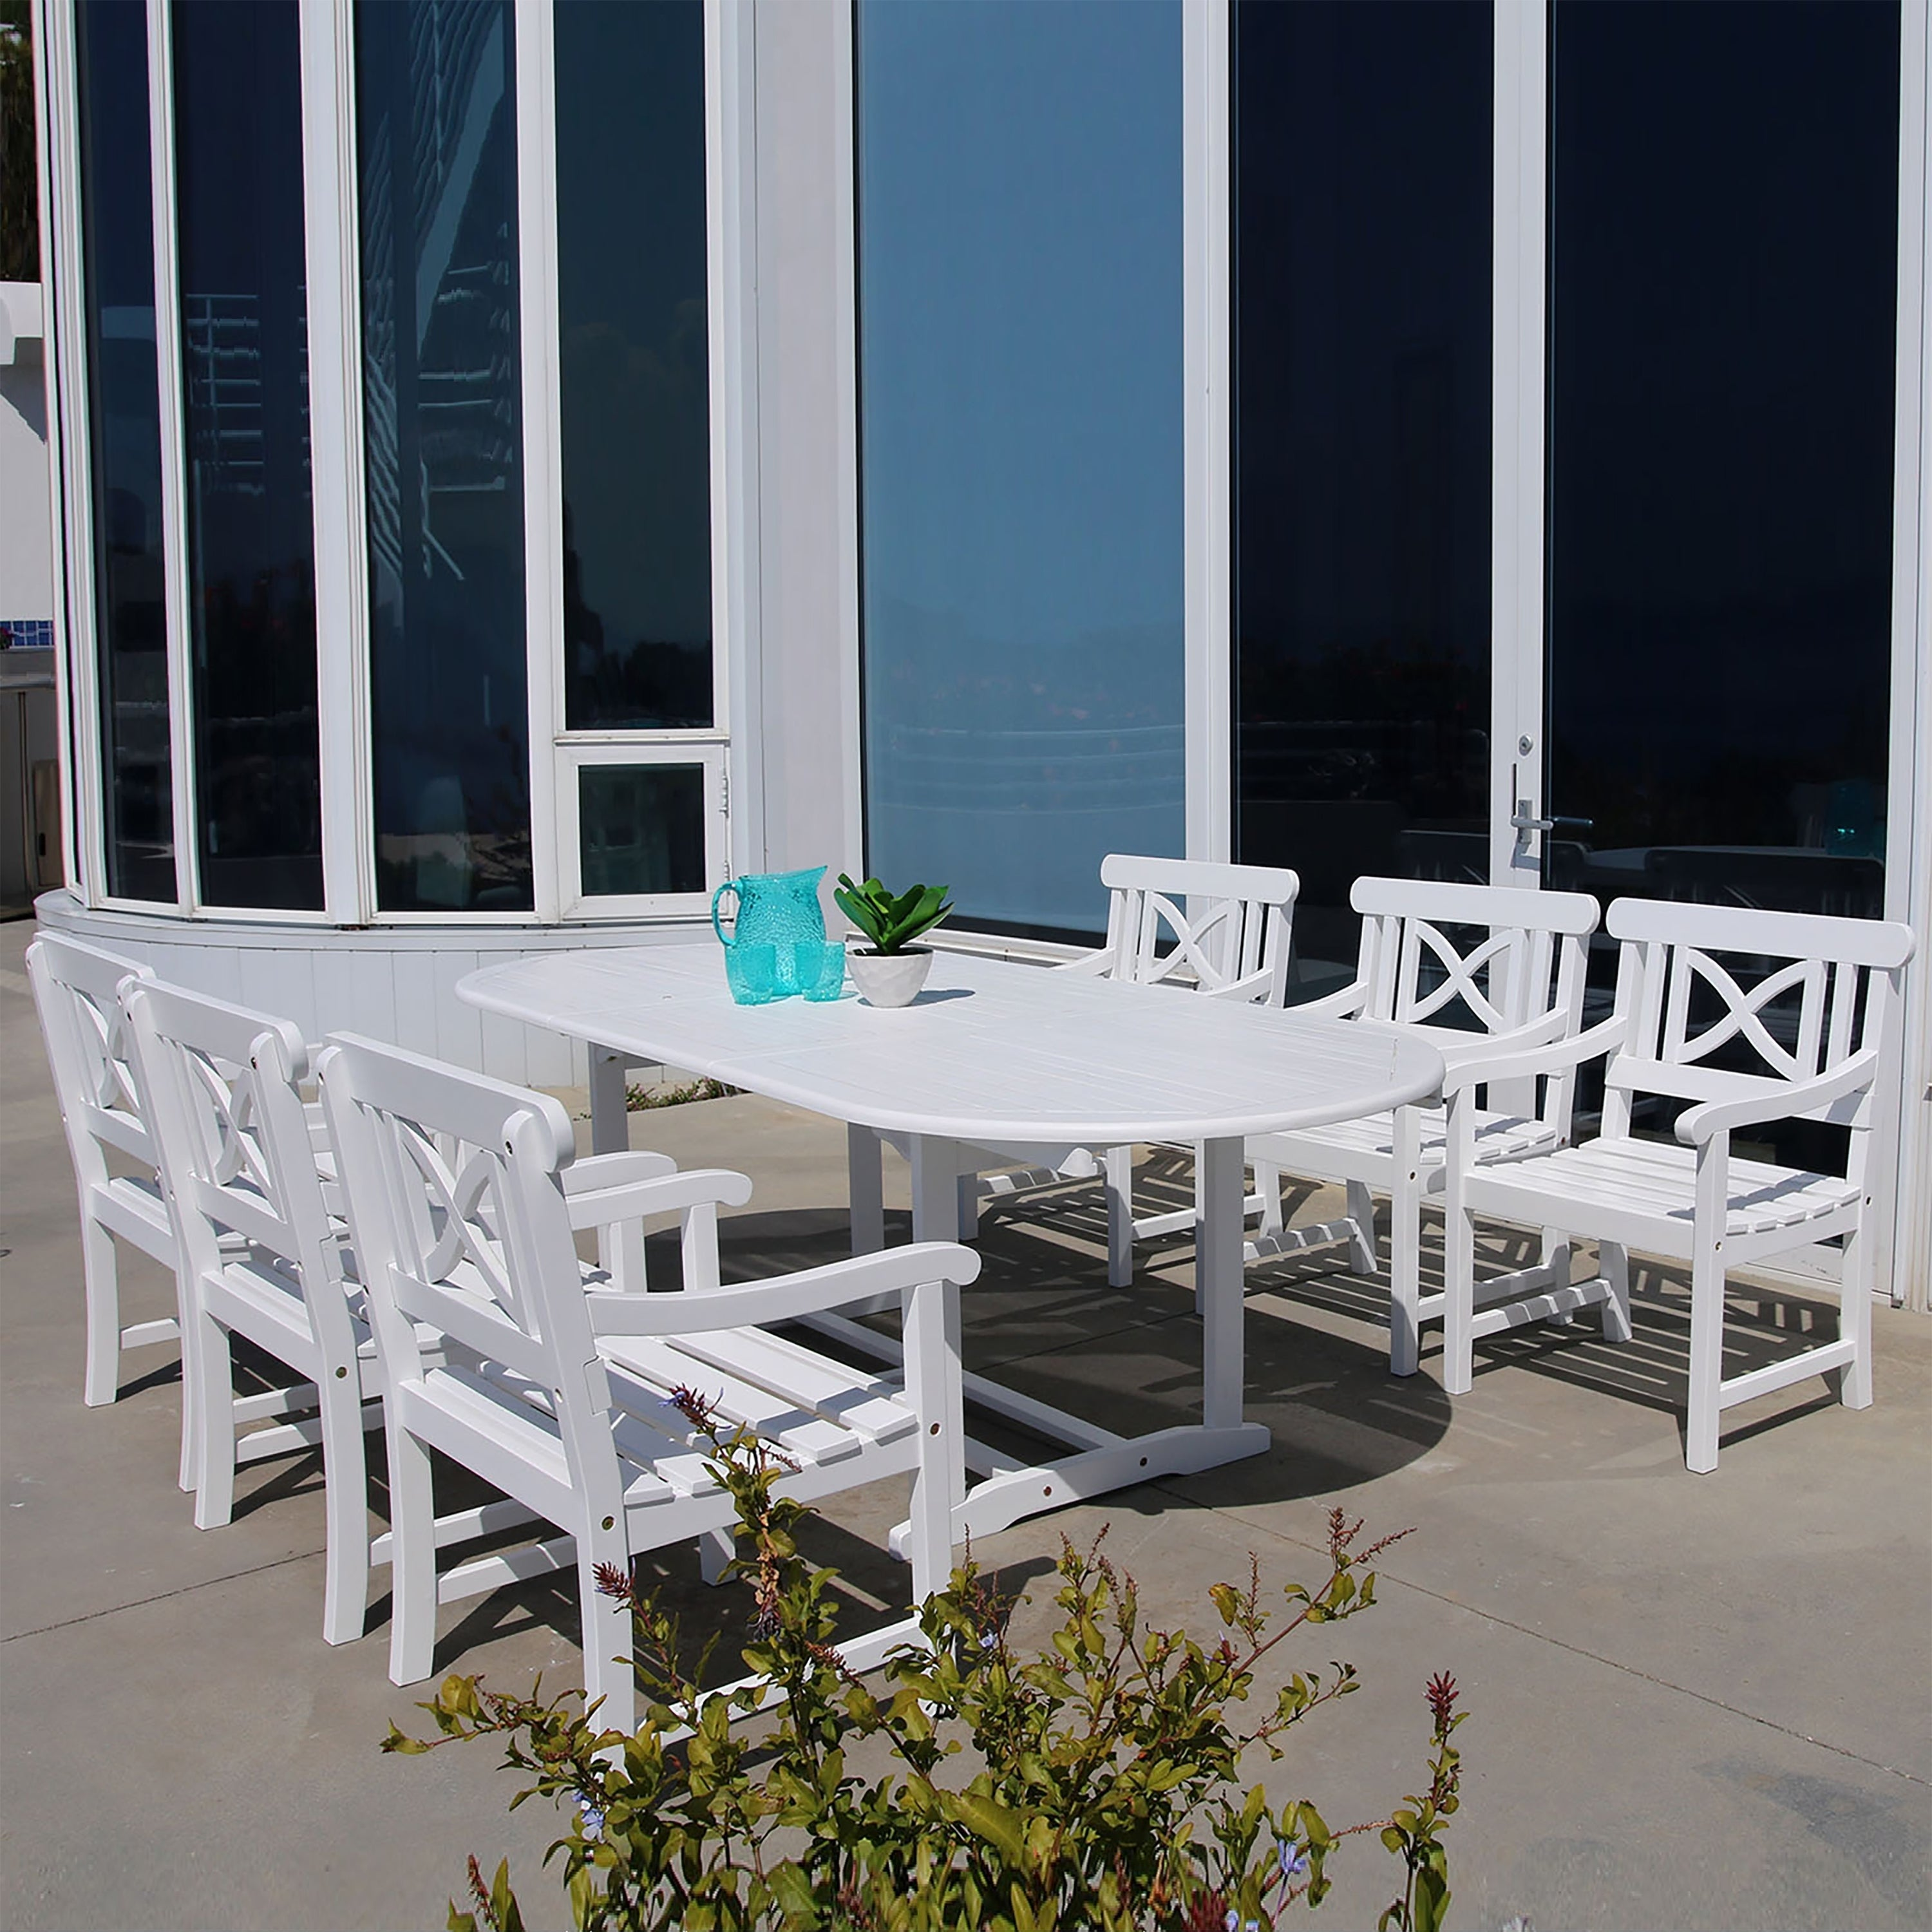 Vifah Bradley Oval Extension Table and Armchair Outdoor Wood Dining Set (Outdoor Furniture), White, Size 7-Piece Sets, Patio Furniture (Acacia)